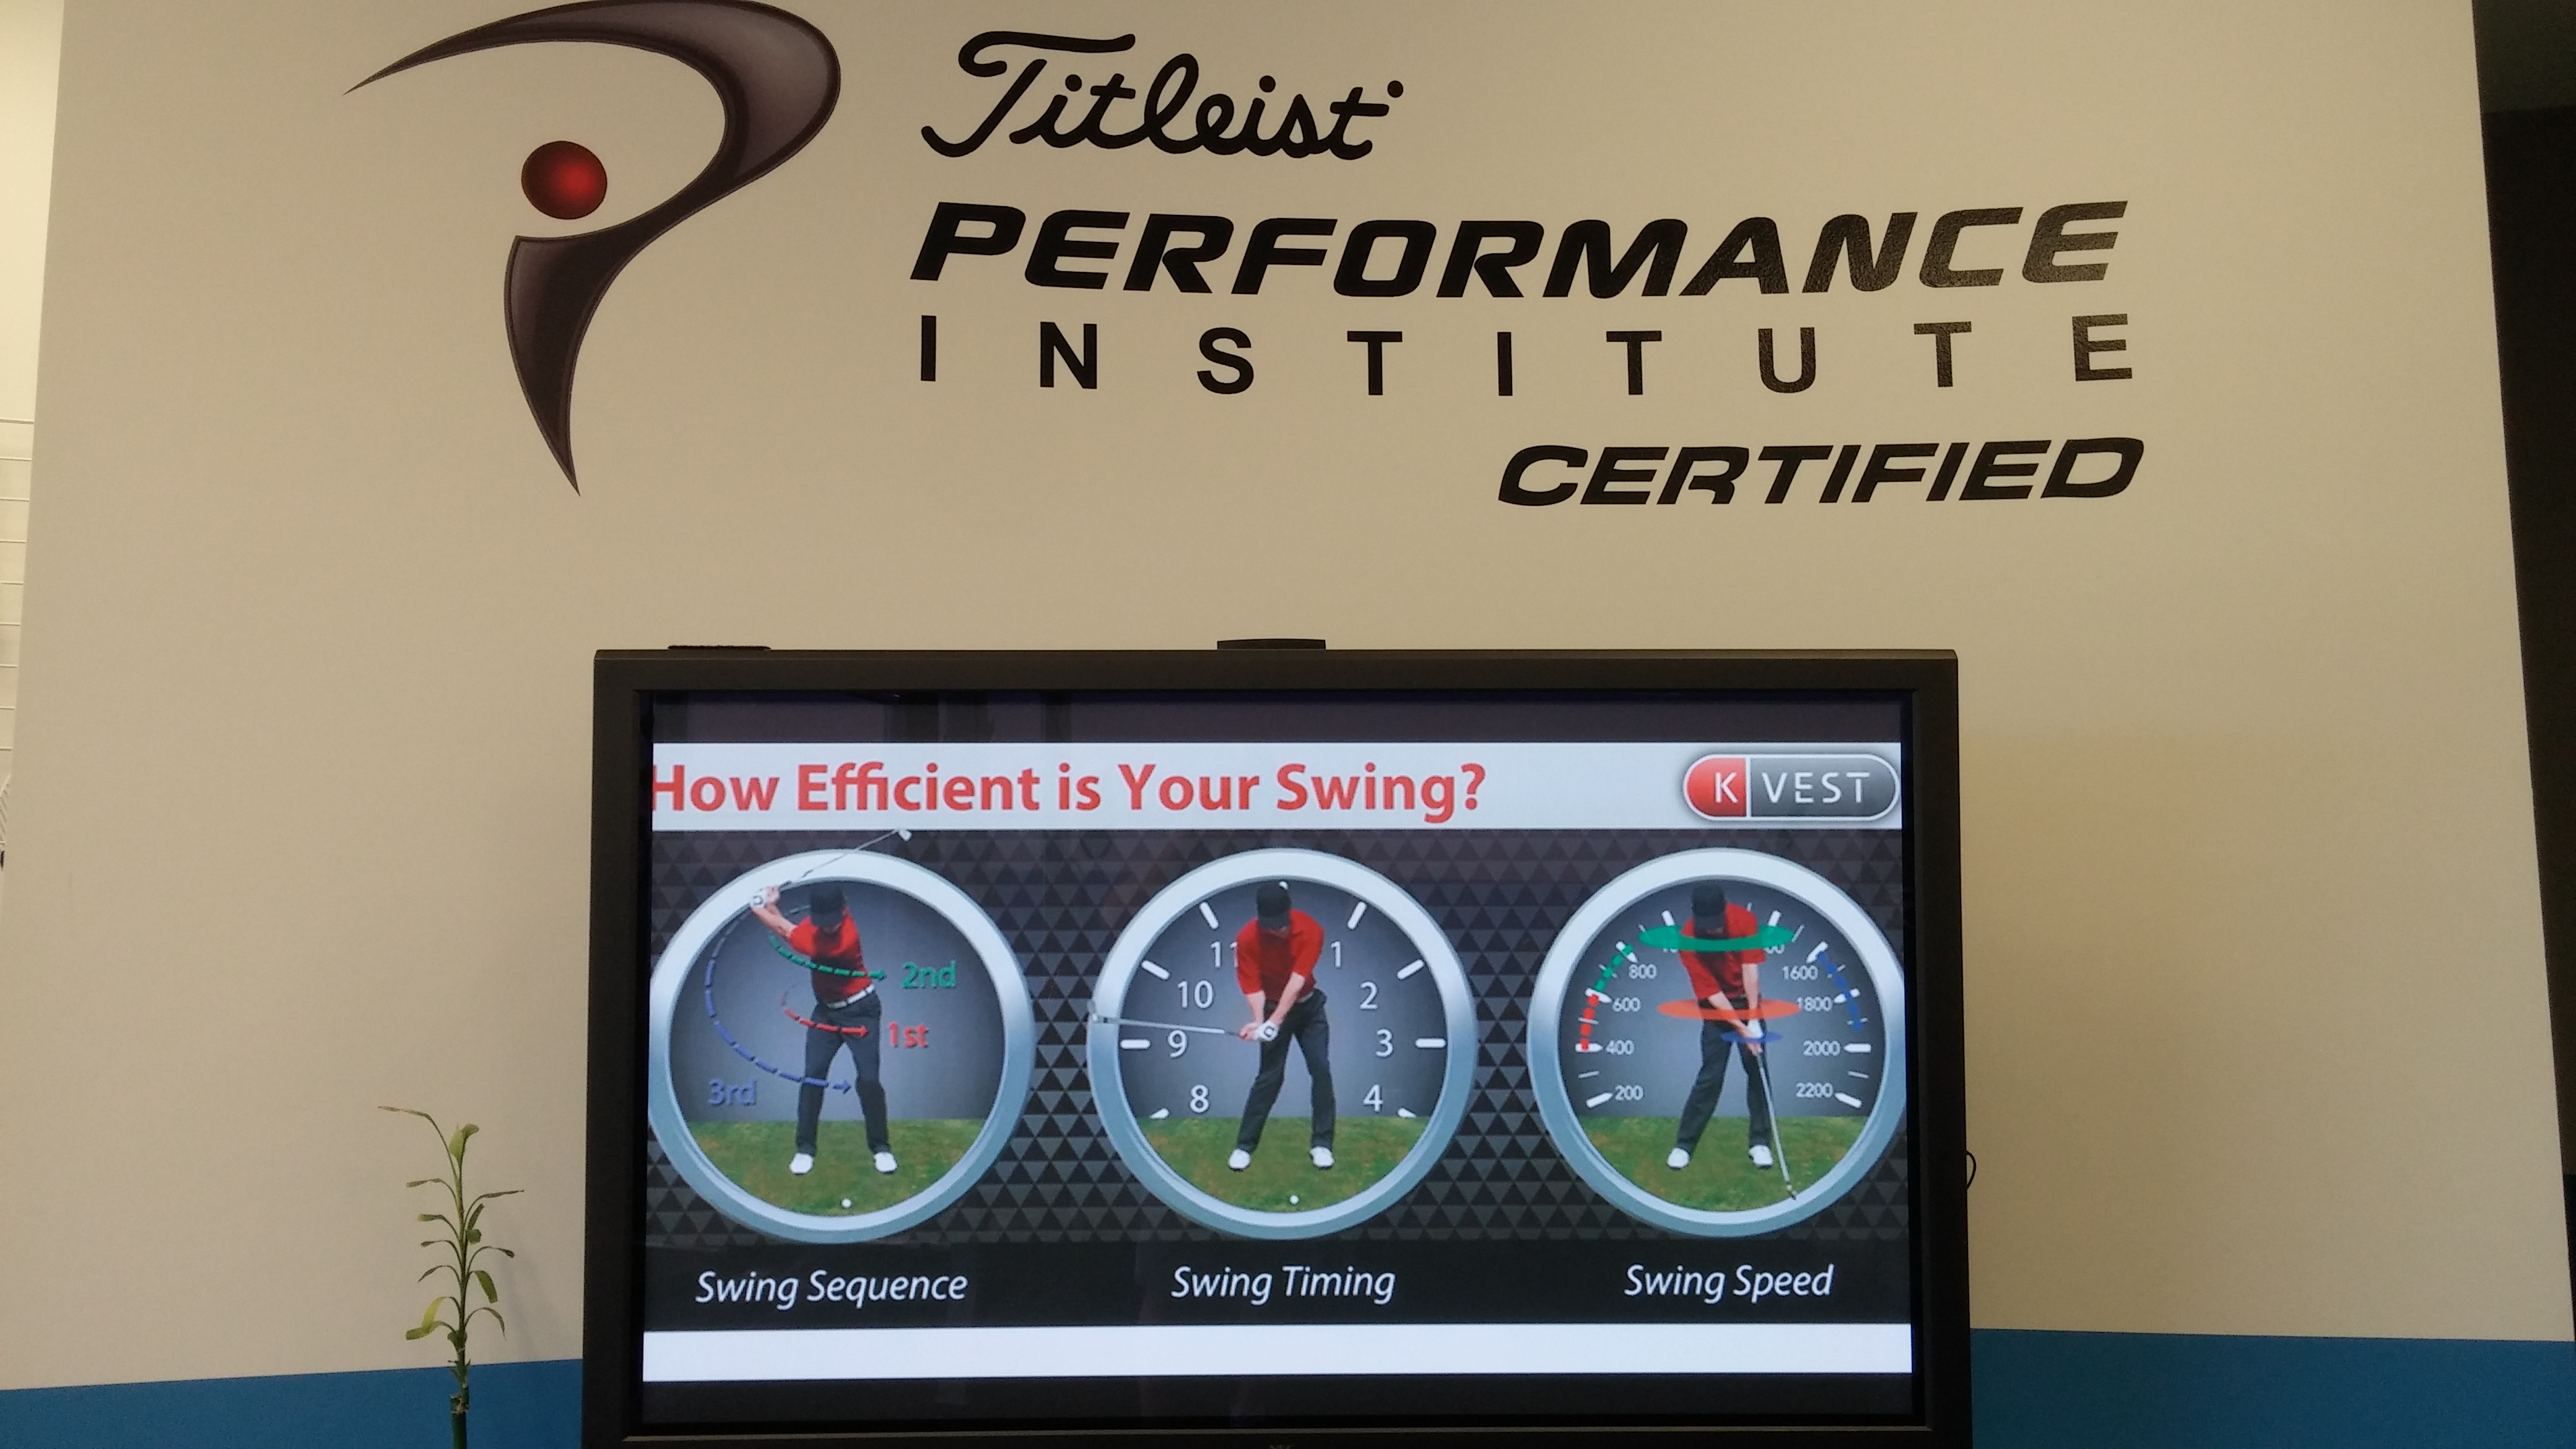 Golf fitness body crafters inc frequently asked questions what is tpi certified xflitez Images